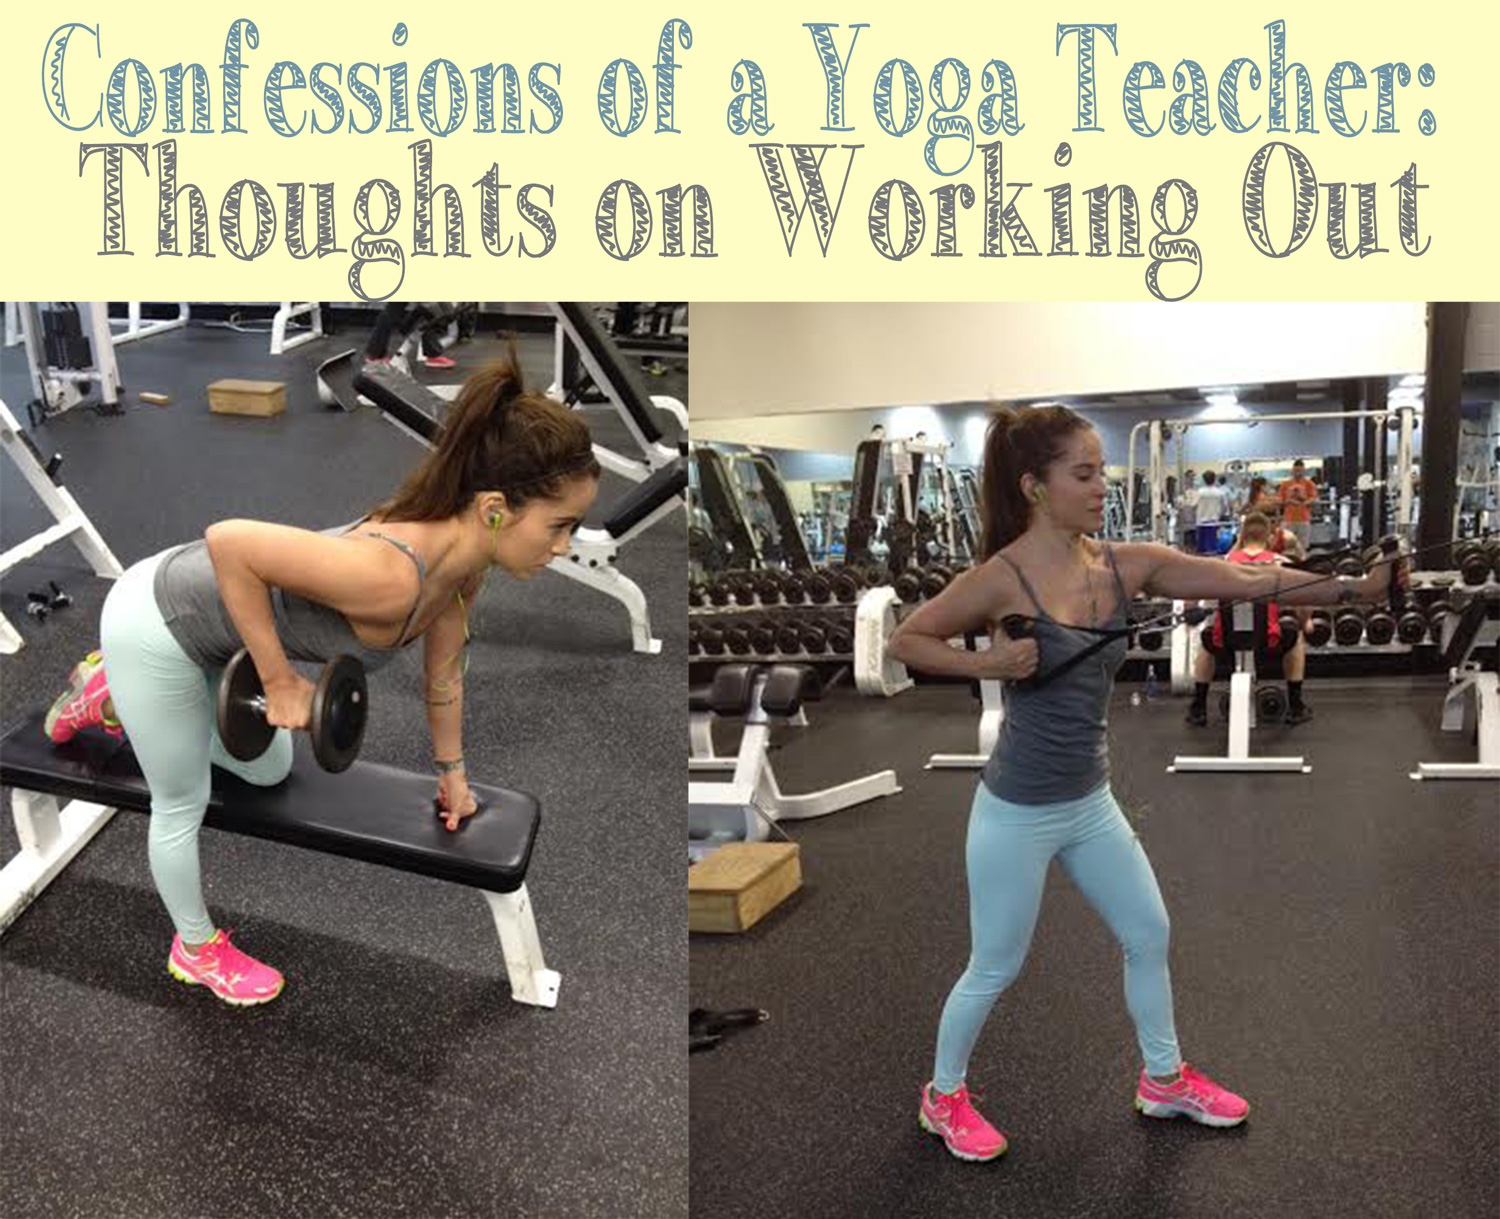 Confessions of a yoga teacher  Wearing:  asics sneakers ,  fabletics leggings  c/o,  f21 tank  Using:  Bose headphones